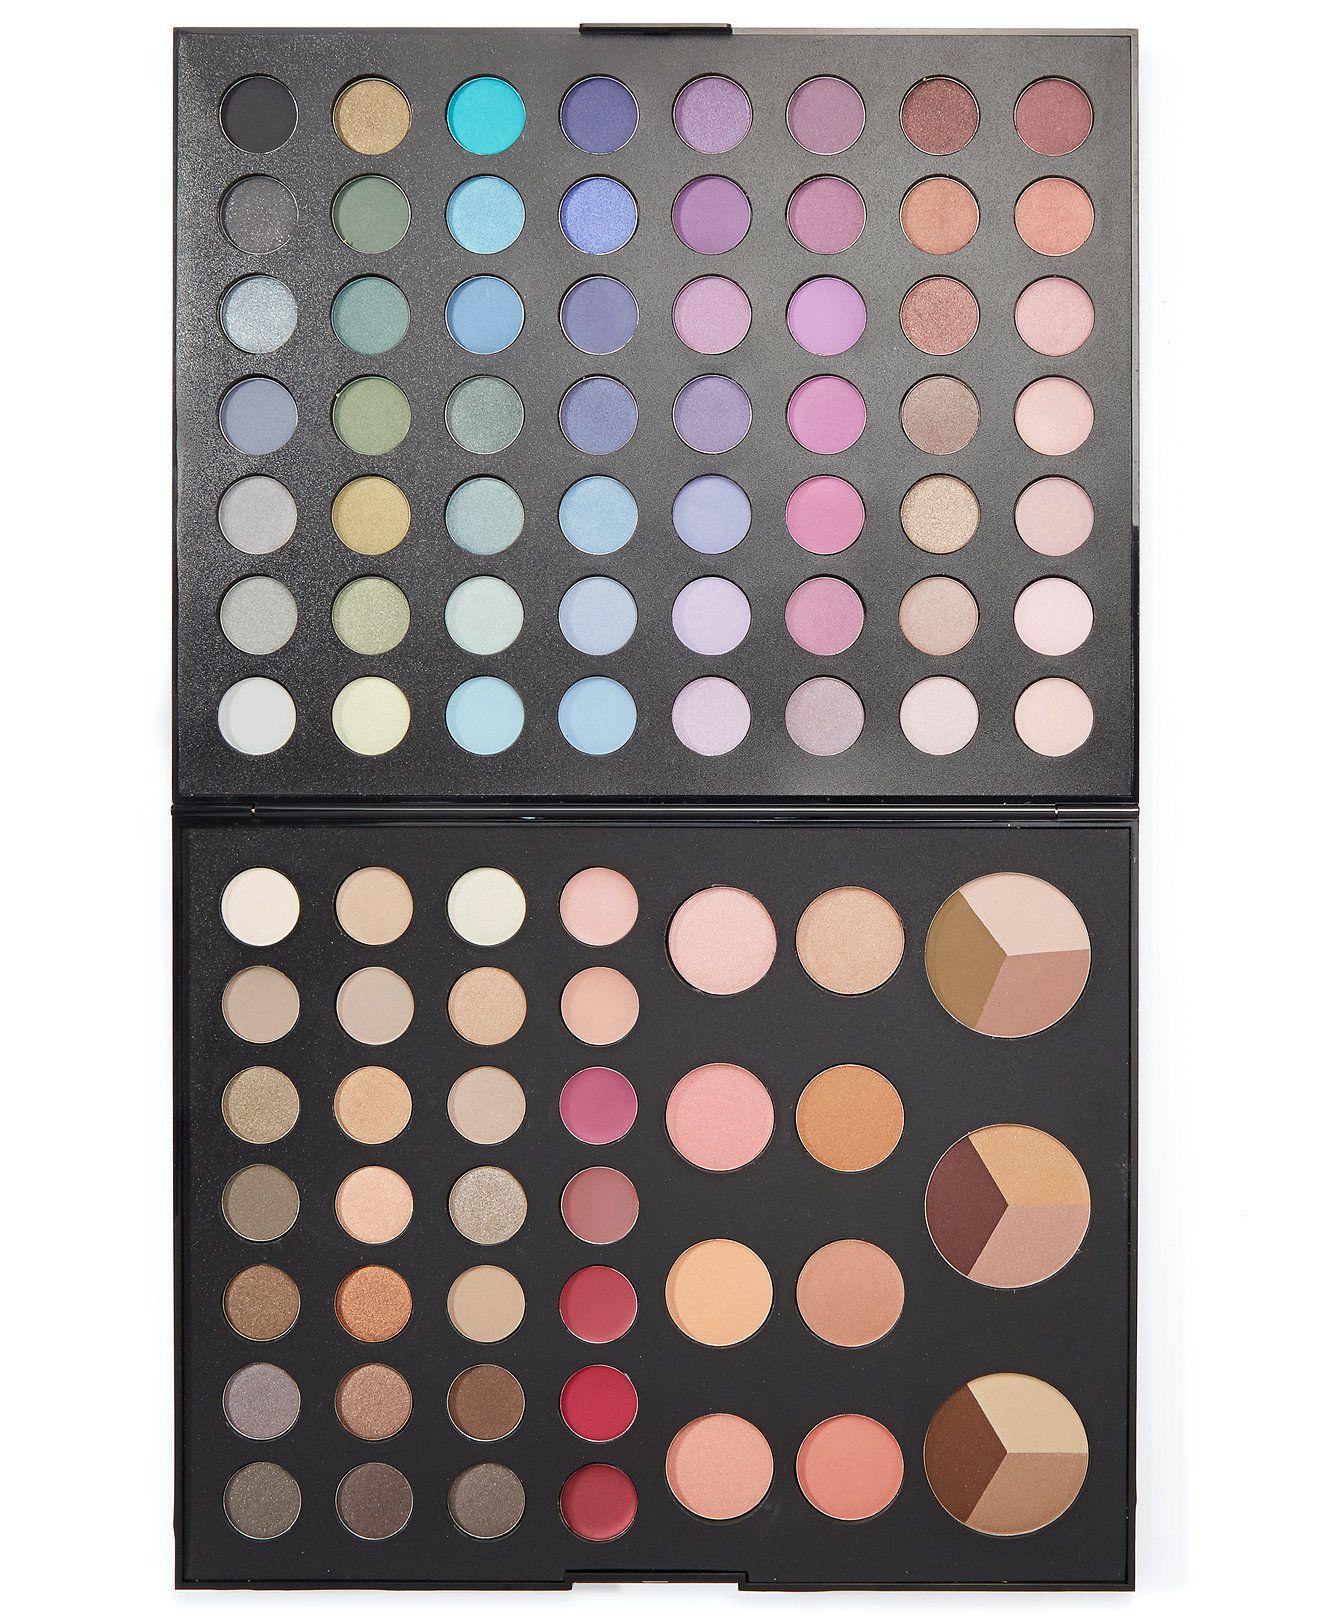 Gifts Under $50 Macys Impulse Beauty Artistry Palette Heavy On